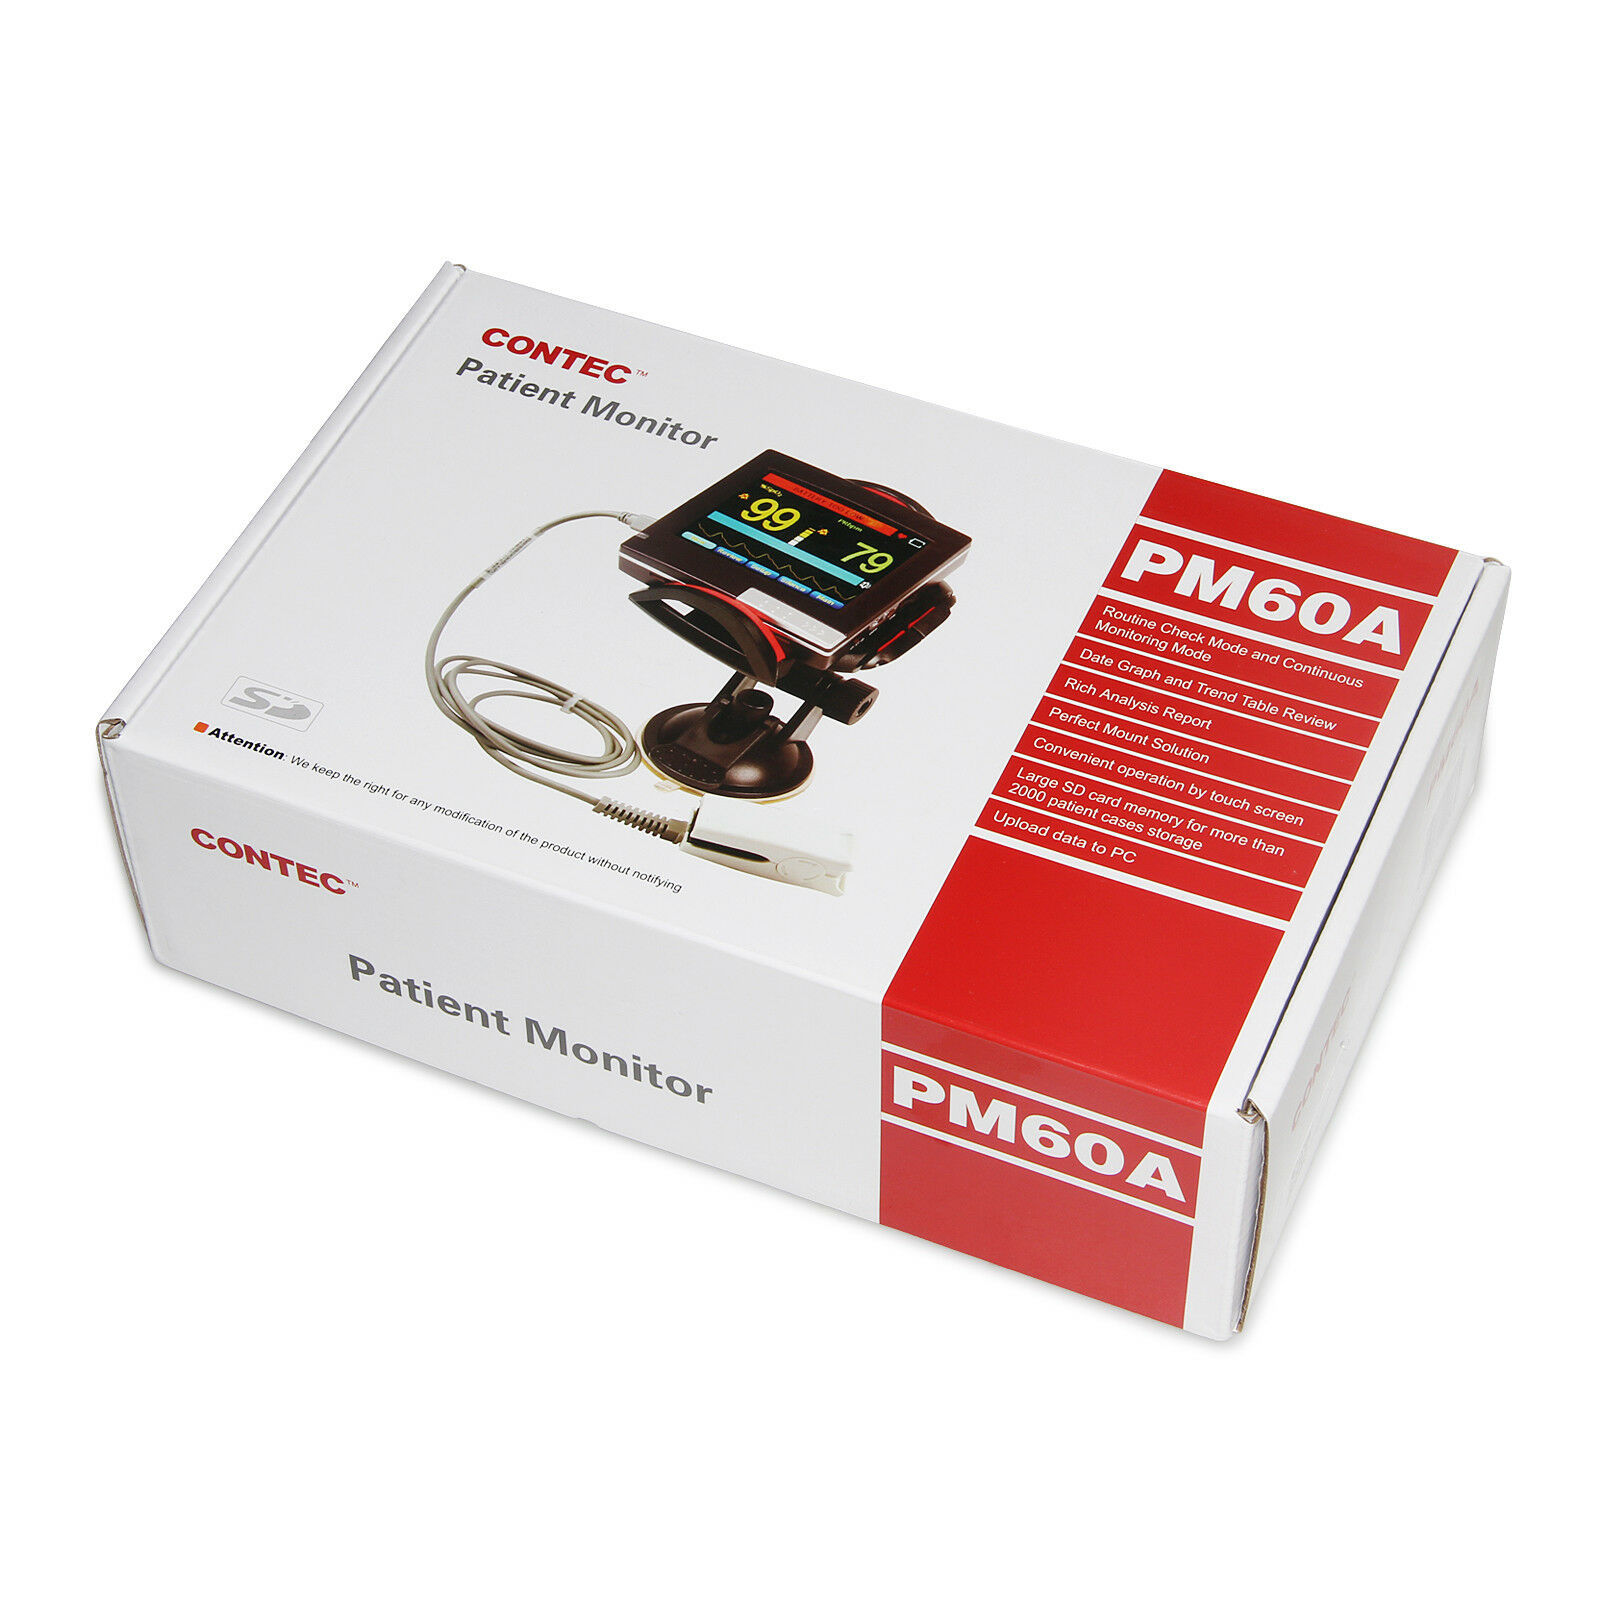 New Born Touch ICU Patient Monitor Infant SPO2 Pulse Oximeter+Software+SD Card